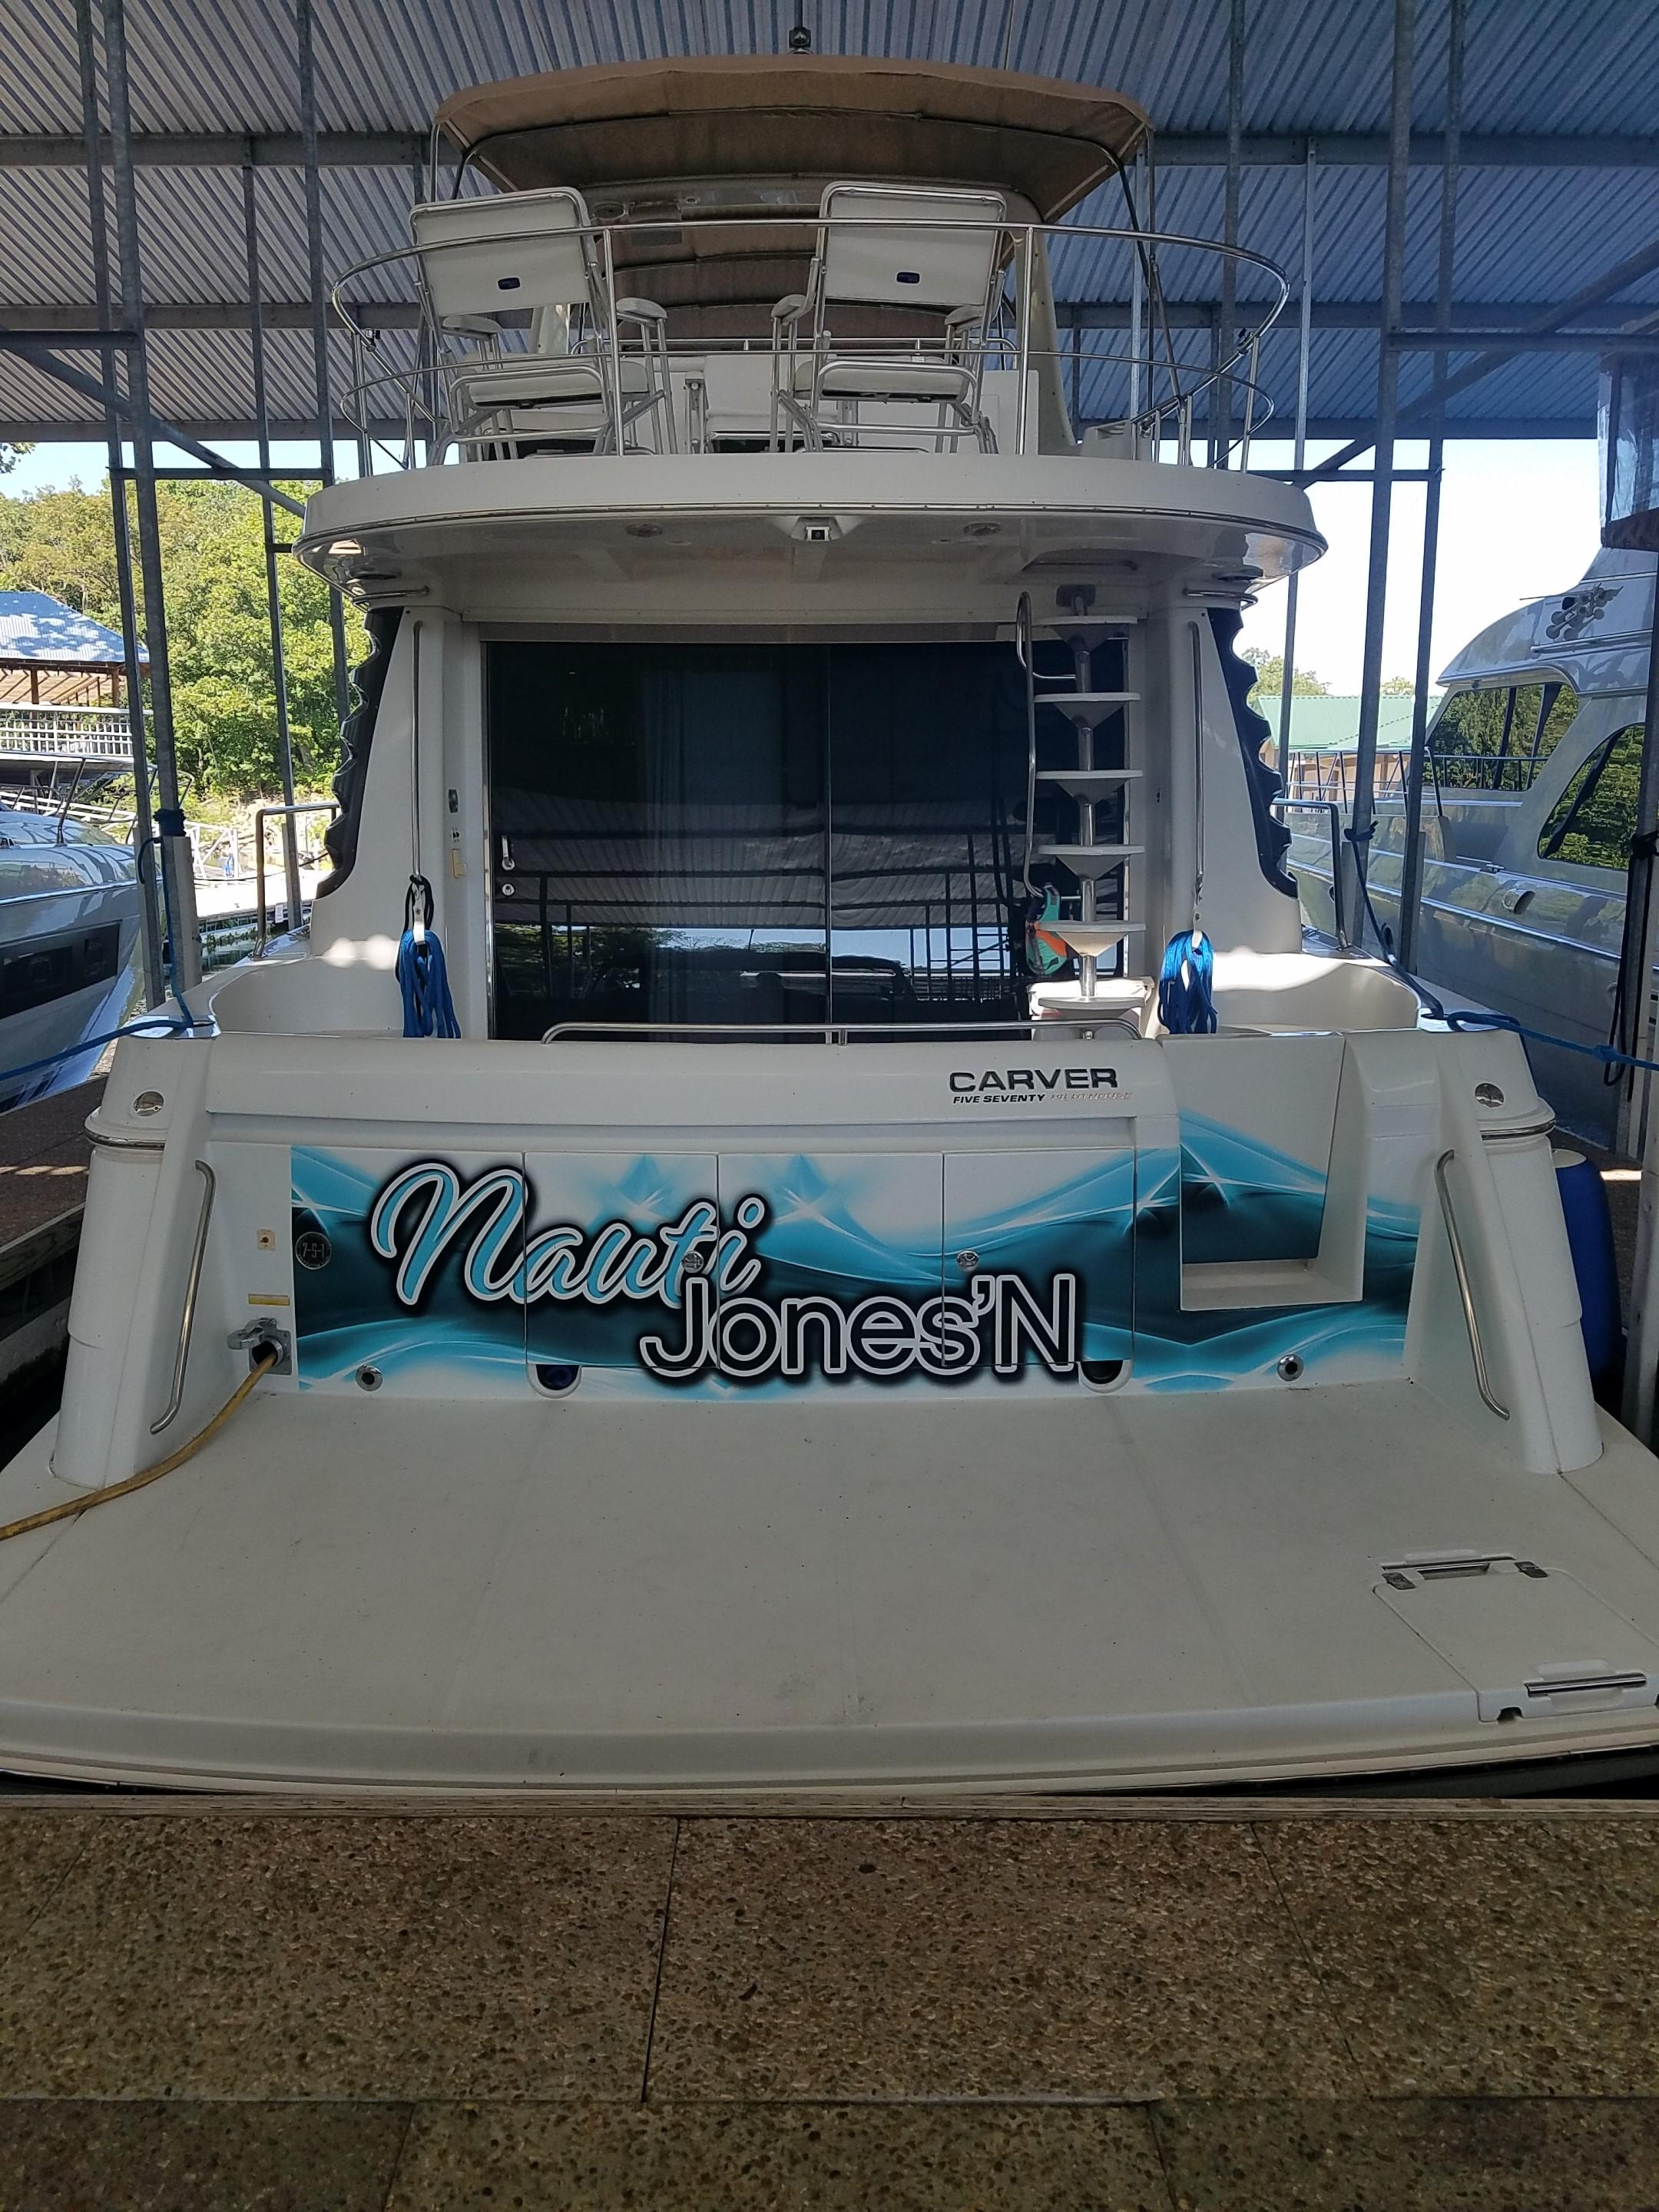 59.17 ft Carver 570 Voyager Pilothouse